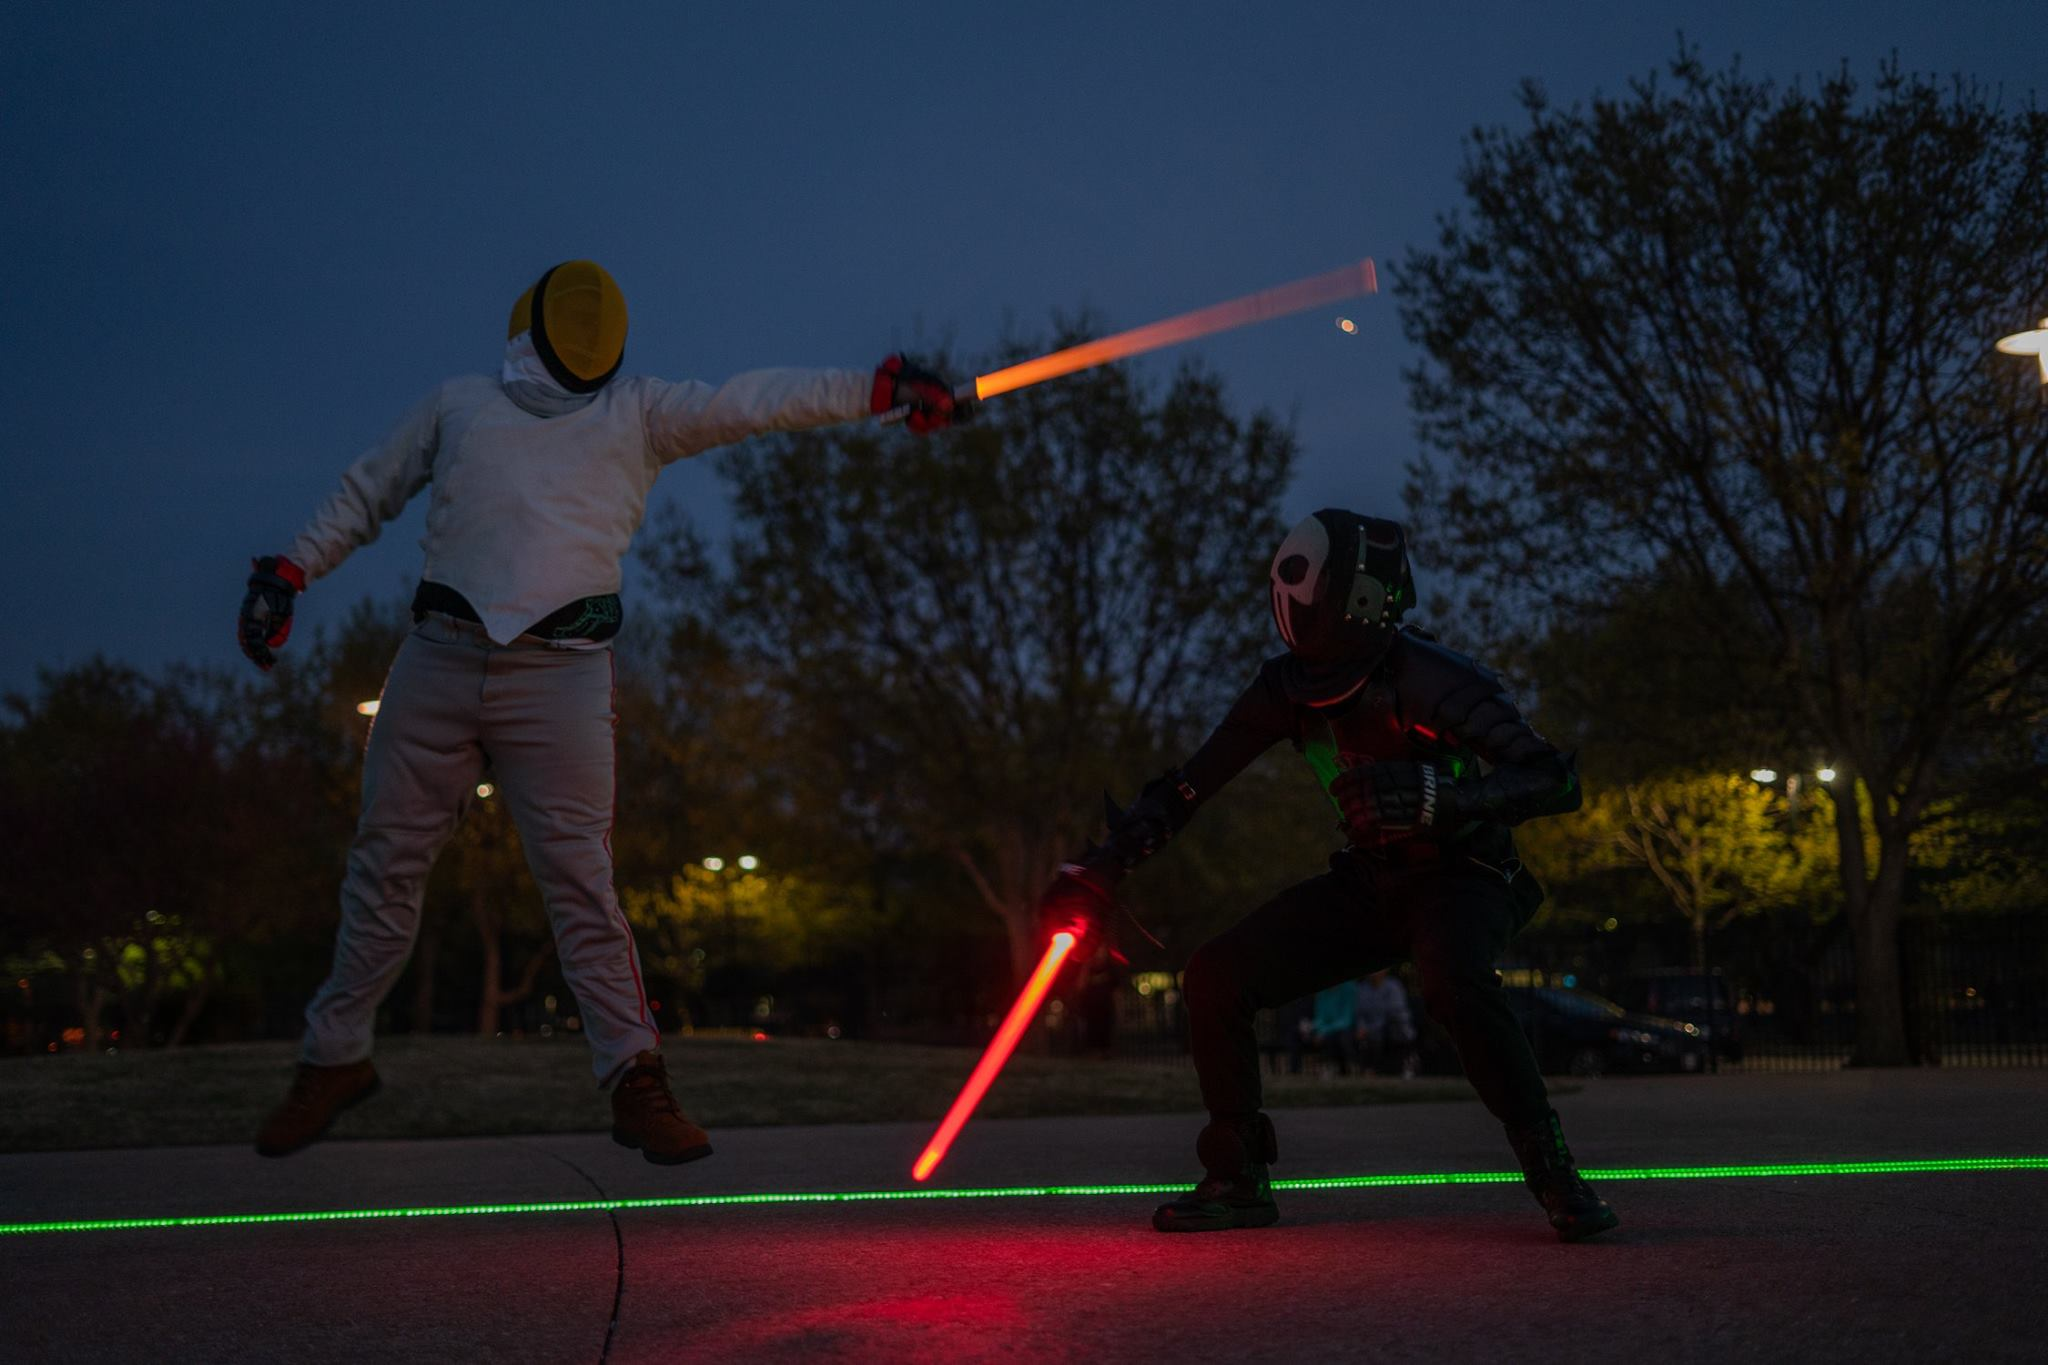 Marc Zipper's floating attack. Photo courtesy of Kyber Combat.